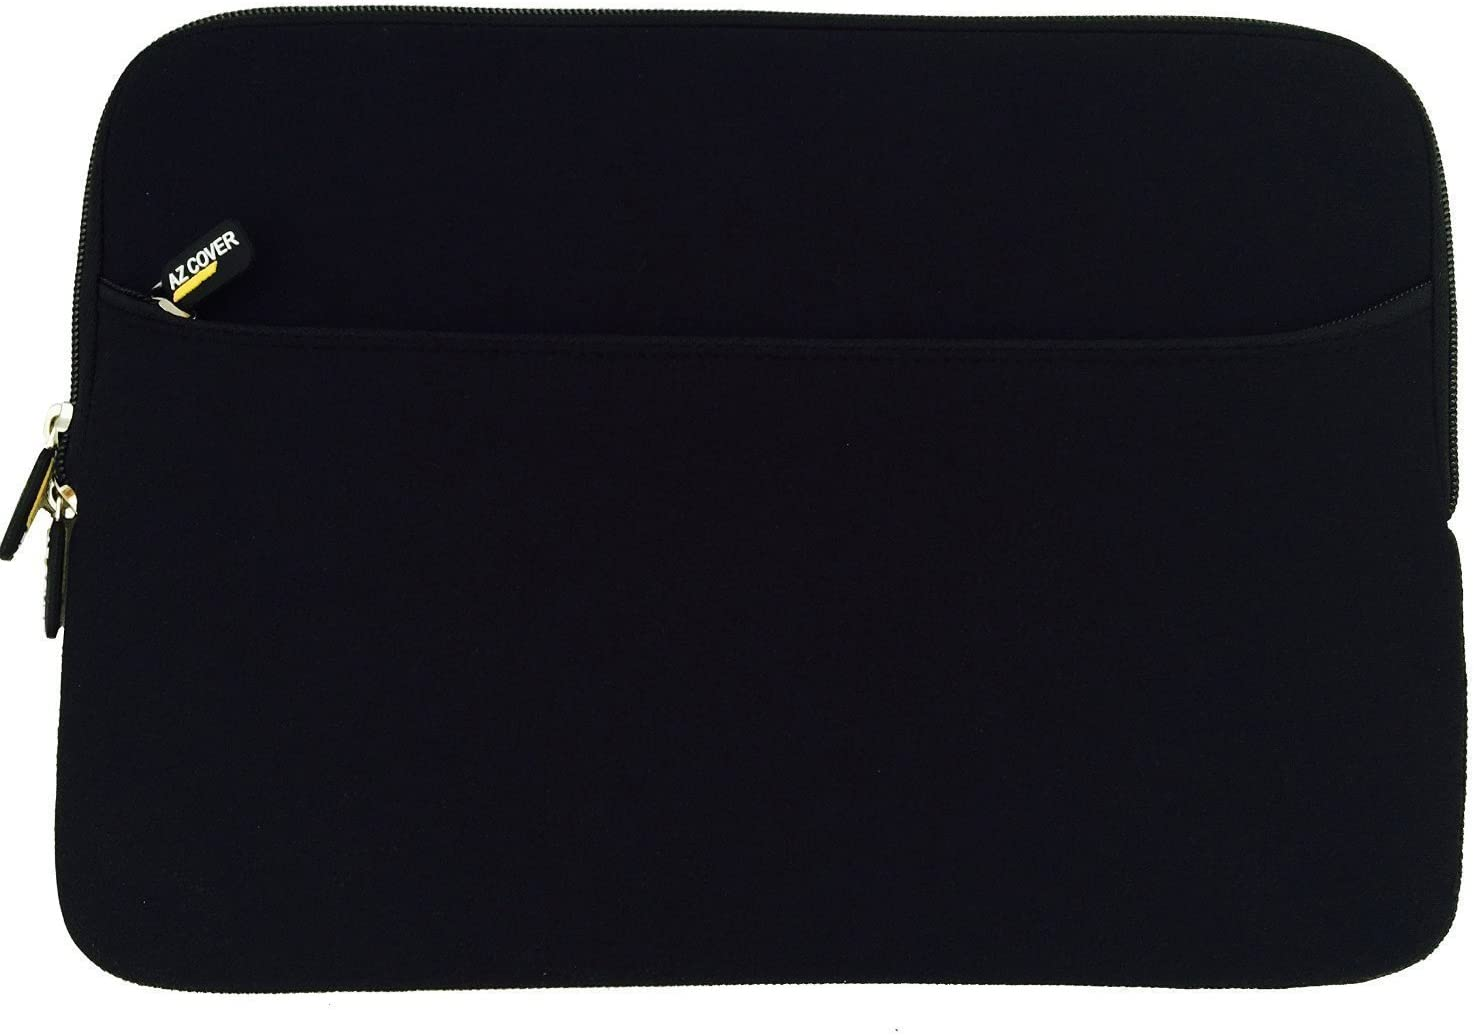 AZ-Cover 10.1-Inch Laptop Sleeve Case Bag (Black) With Pocket For Samsung Galaxy Note 10.1 inch N8000 Wifi 3G 16GB Phone Tablet + One Touchscreen Stylus Pen